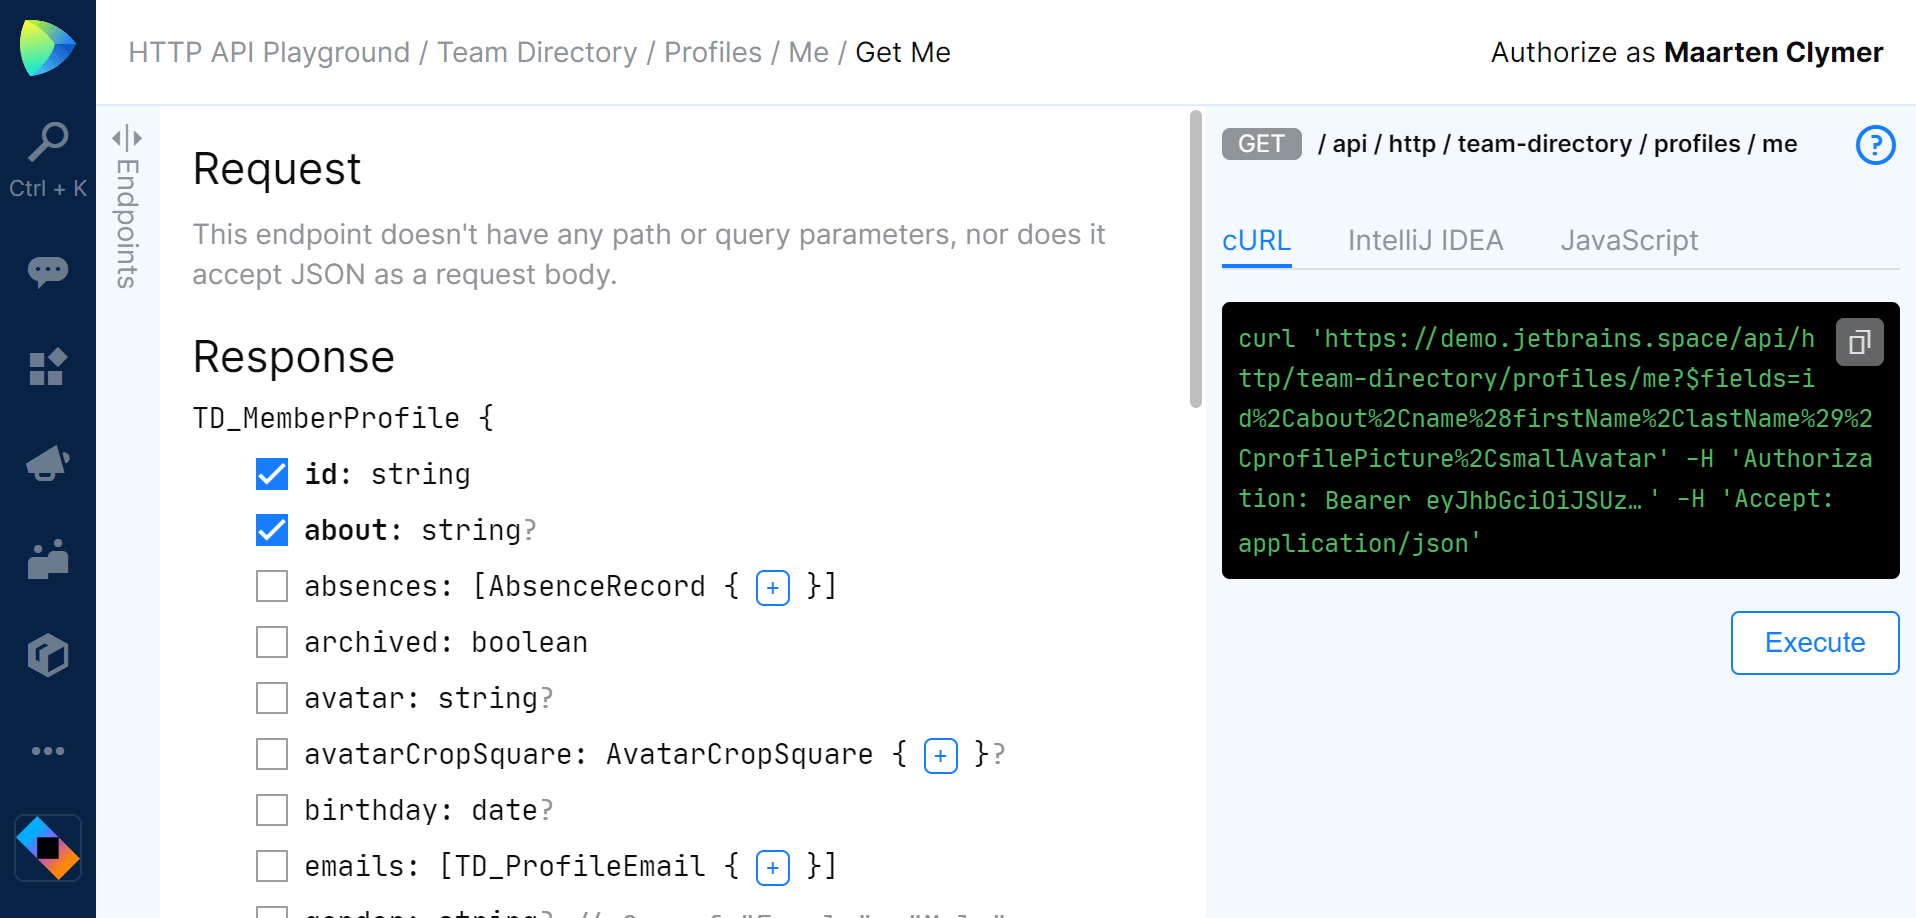 Shaping API responses based on the data required